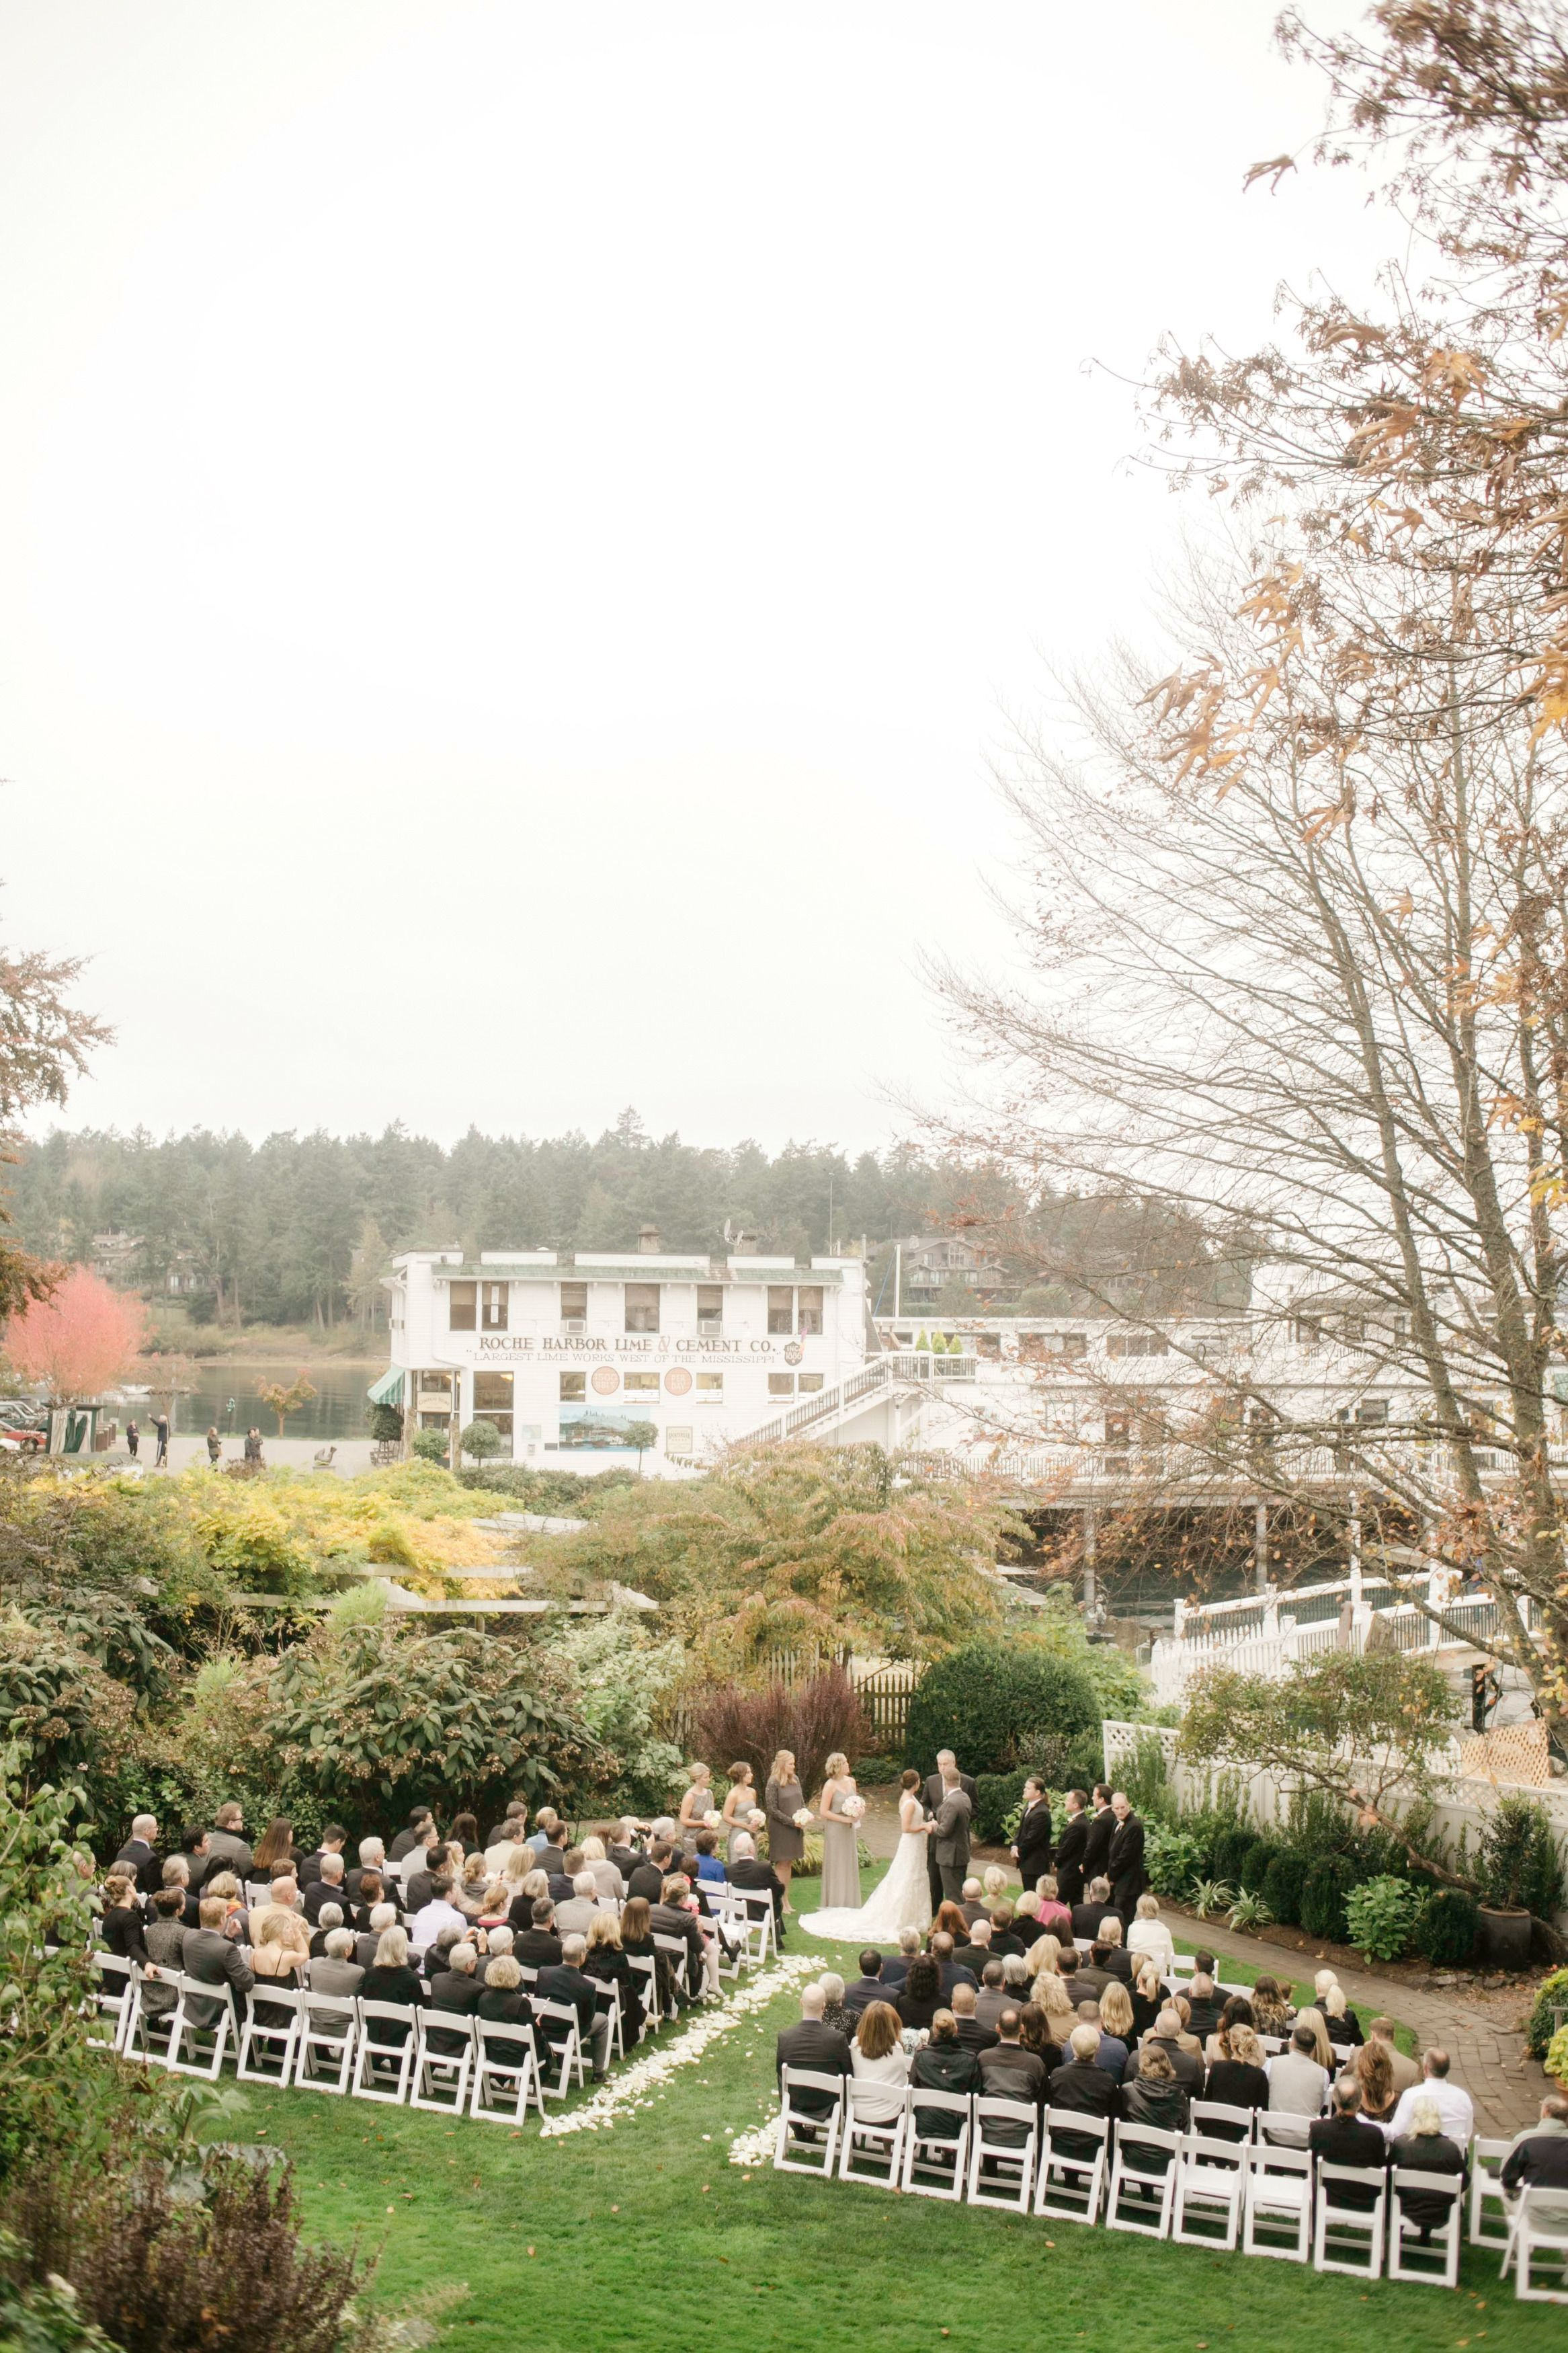 Rhodes Photography Catherinerhodesphotography Read More Http Www Stylemepretty Northwest Weddings 2017 04 17 San Juan Island Wedding Day